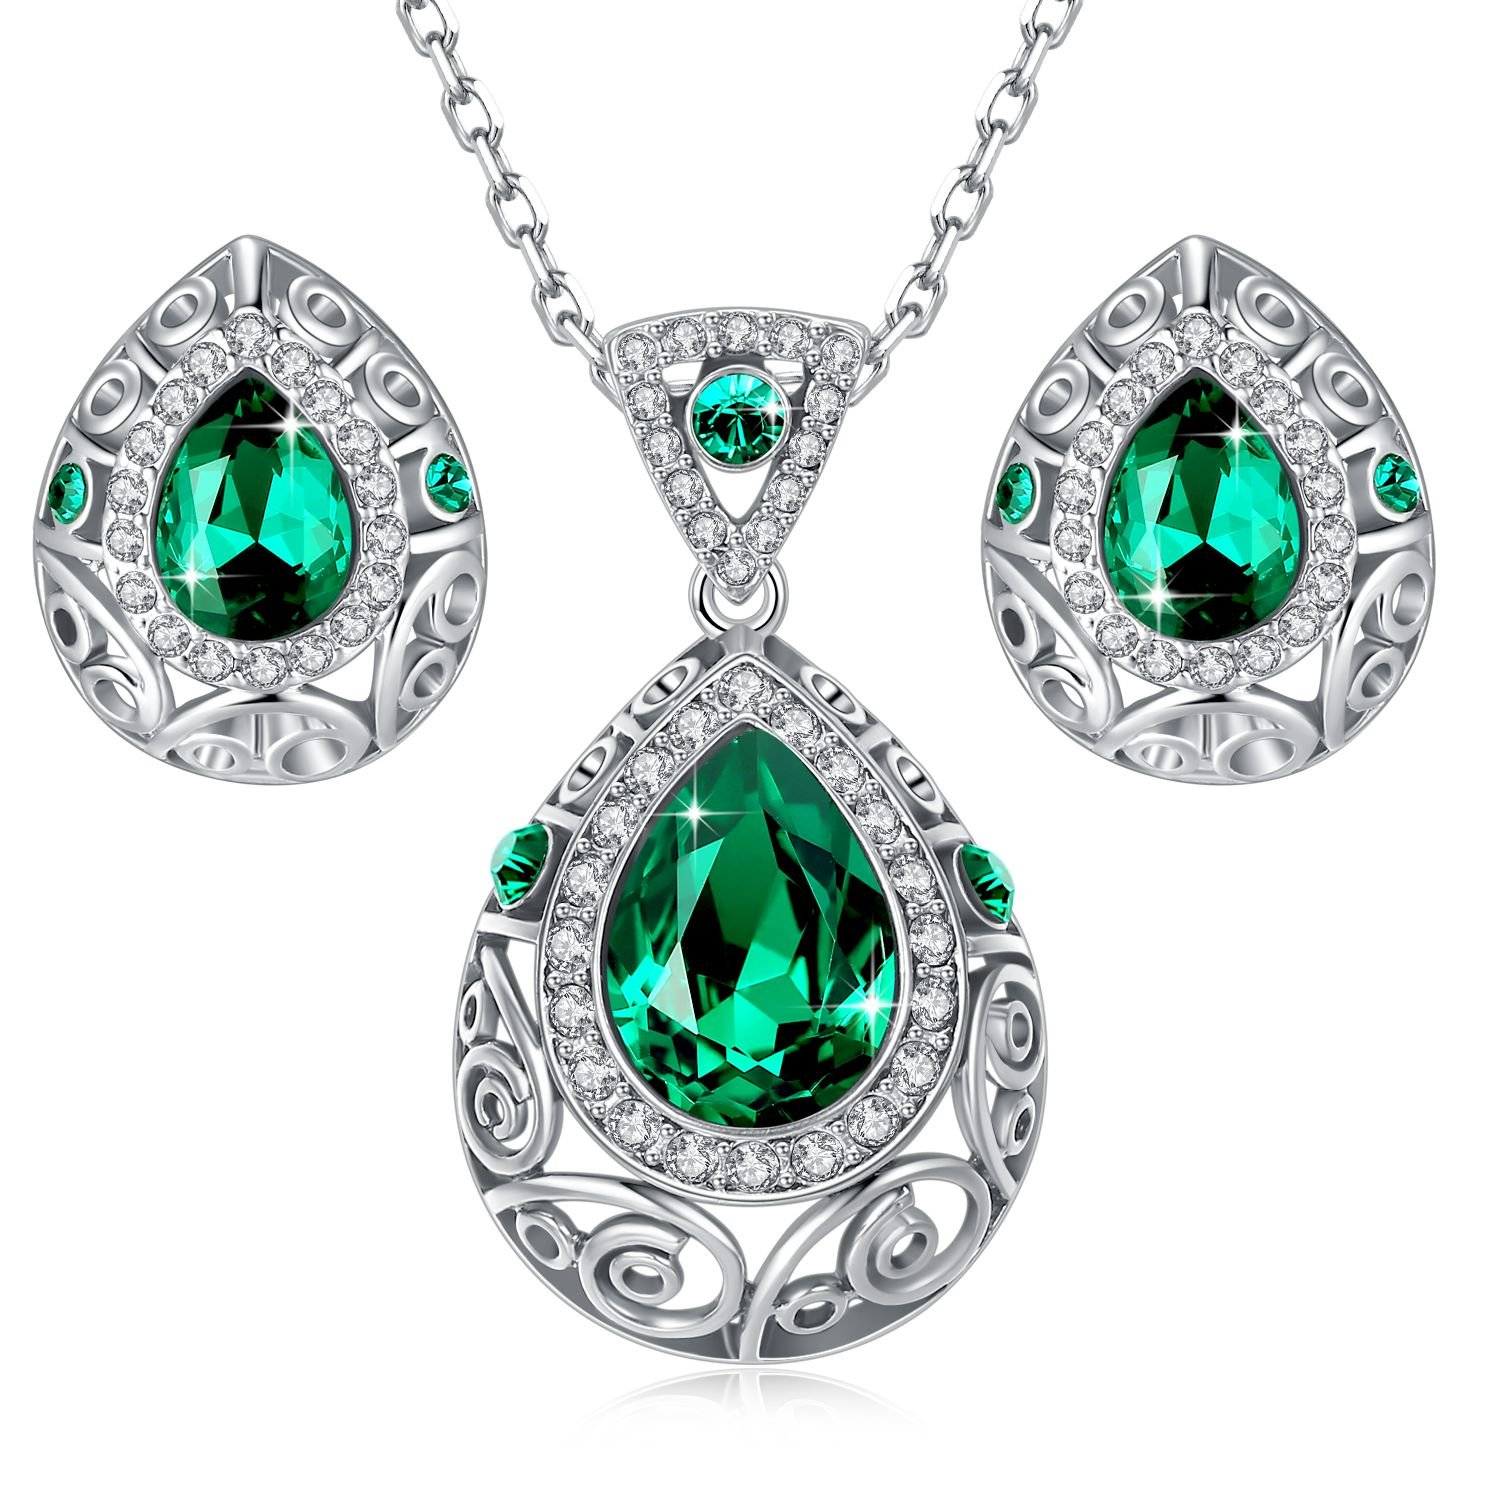 Leafael [Presented by Miss New York] Silver-tone Teardrop Filigree Vintage Style Emerald Green Pendant Necklace Made with Swarovski Crystals Earrings Set, 18'' + 2'', Nickel/Lead/Allergy Box